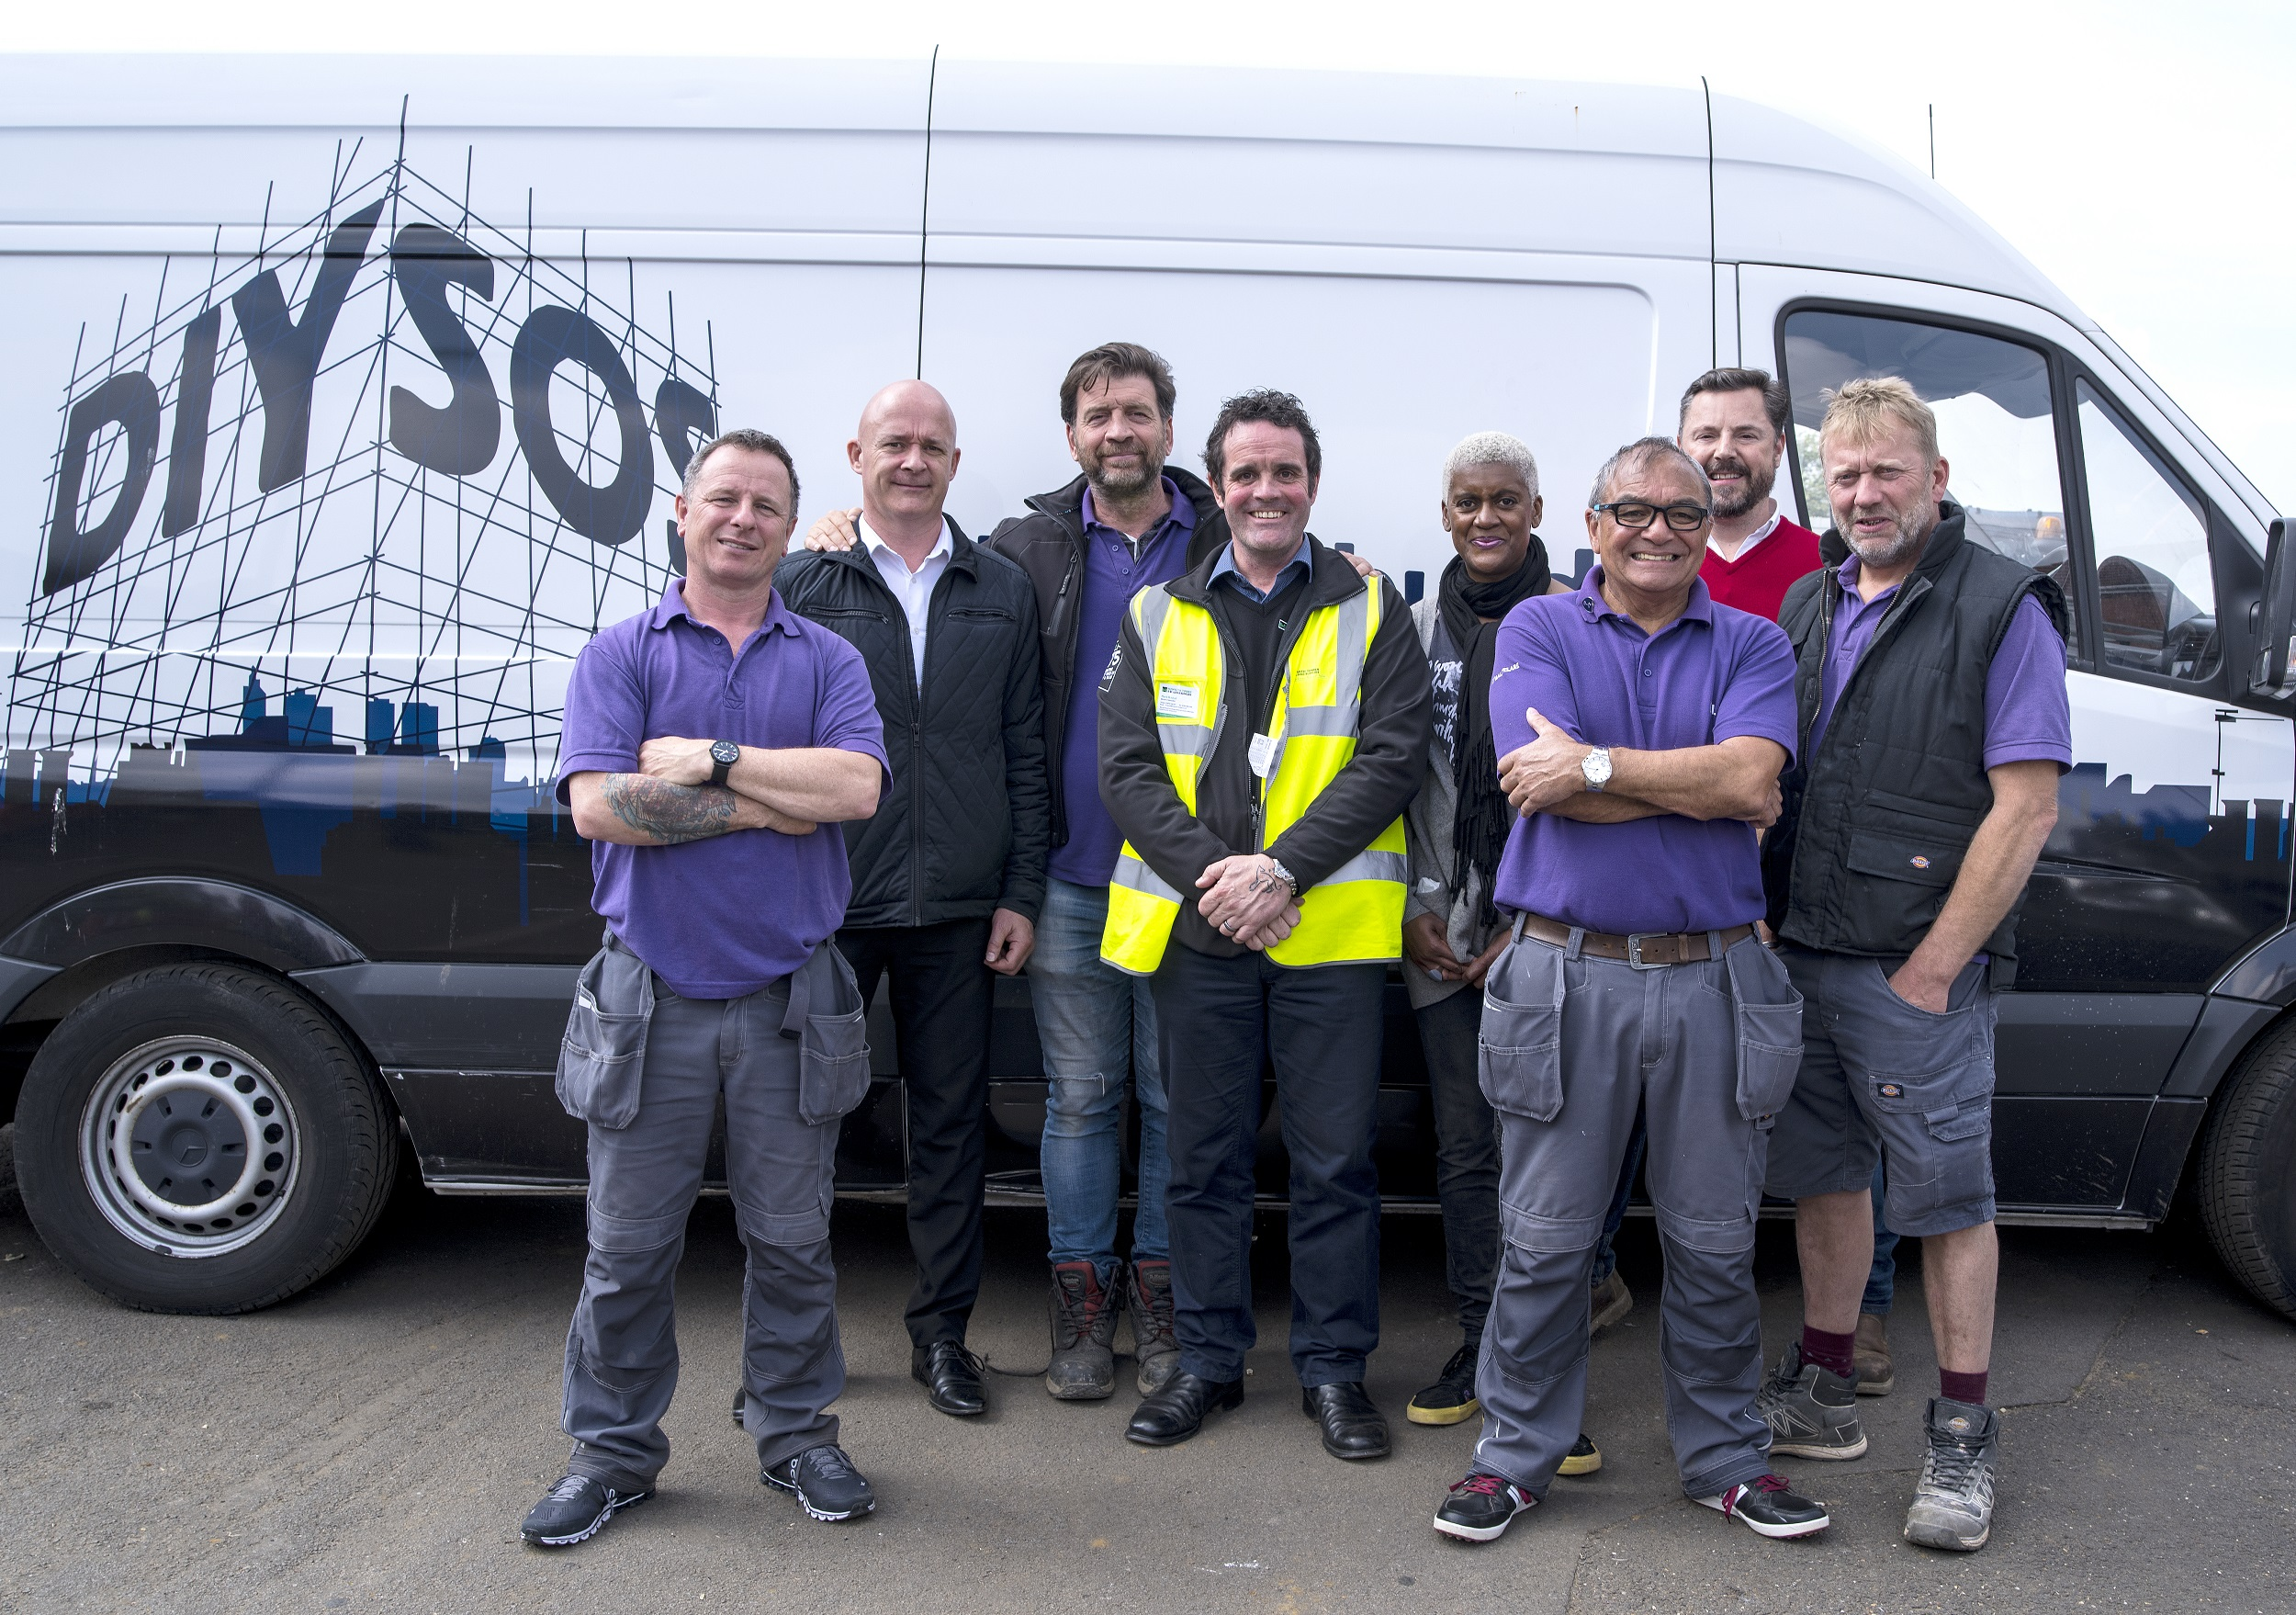 Diy Sos Kitchen Design Howarth Supports Diy Sos The Big Build In Scunthorpe With First